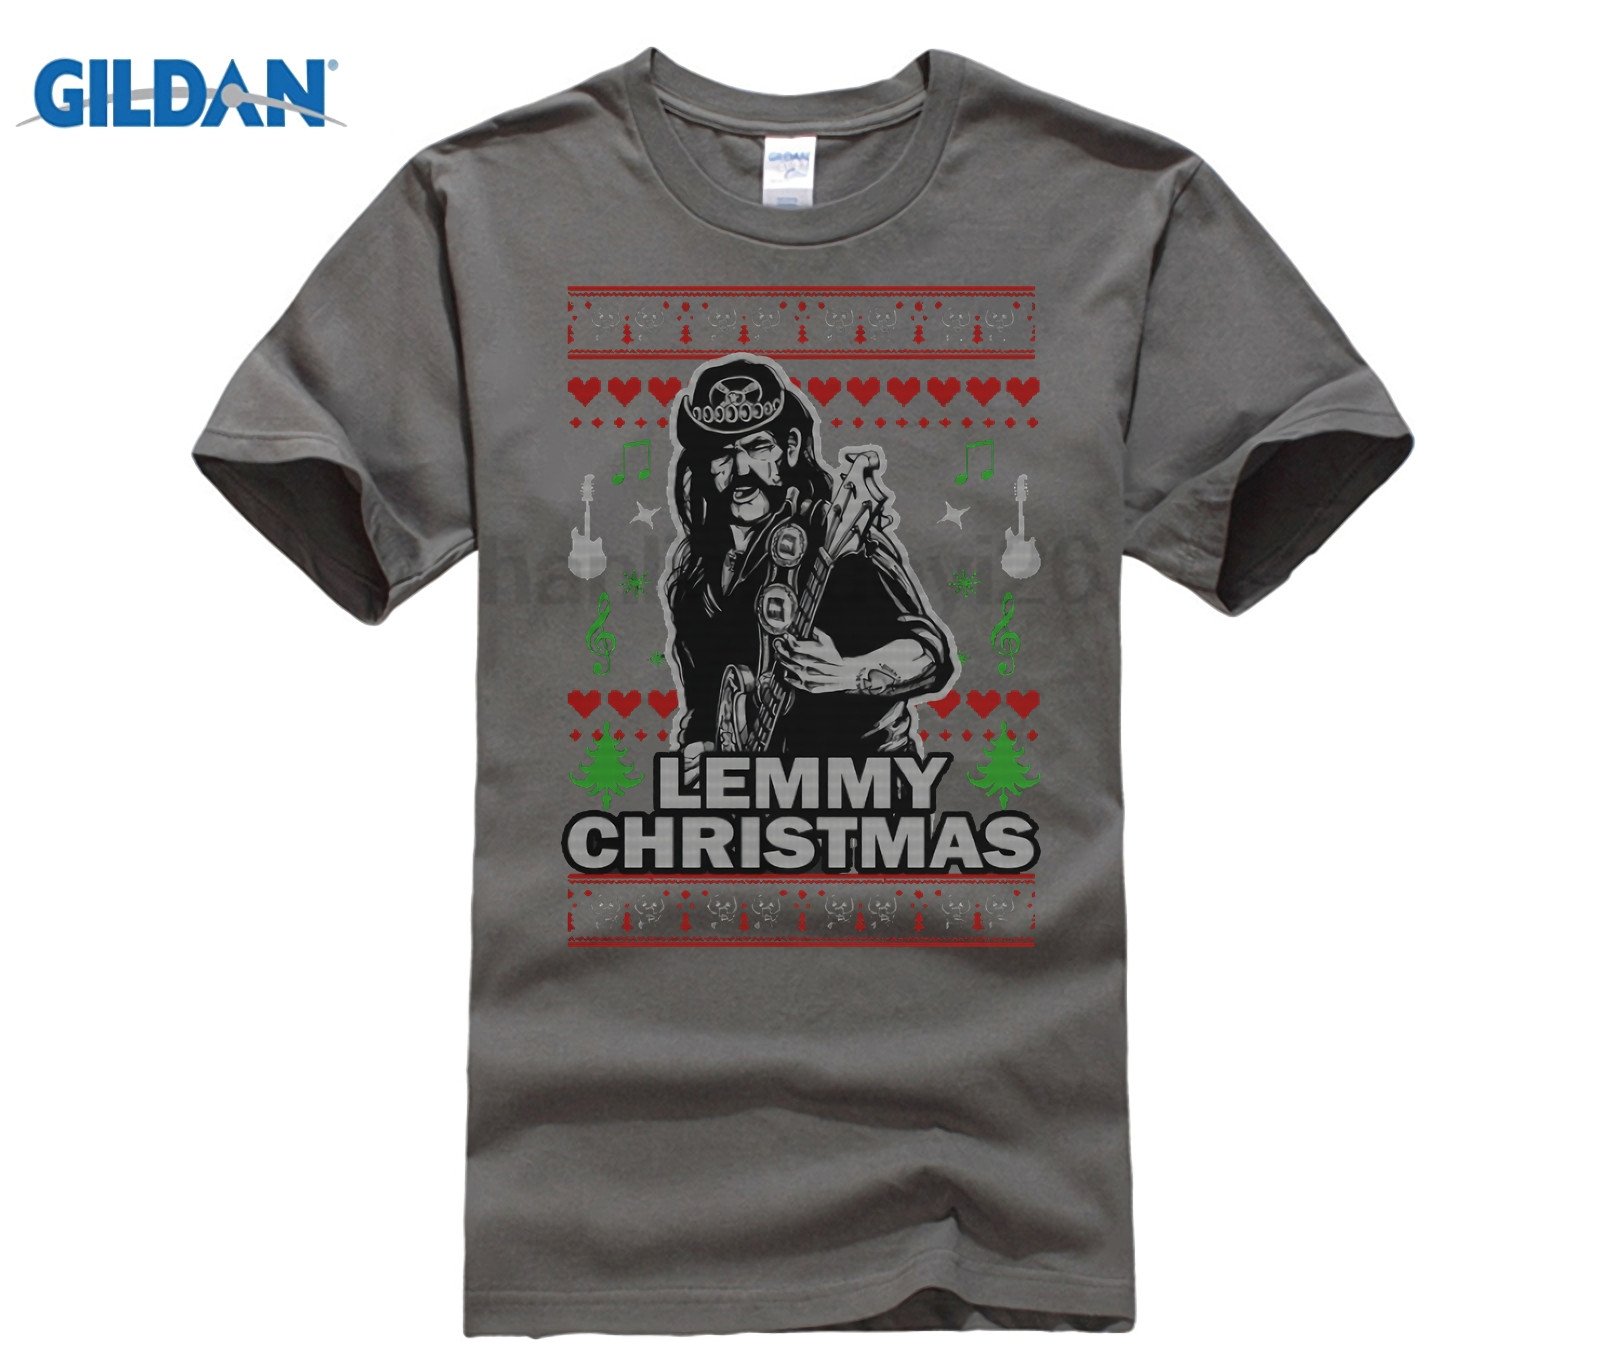 aliexpresscom buy gildan lemmy christmas heavy metal ugly sweater shirts from reliable t shirts suppliers on flatearth sexy store - Heavy Metal Ugly Christmas Sweaters